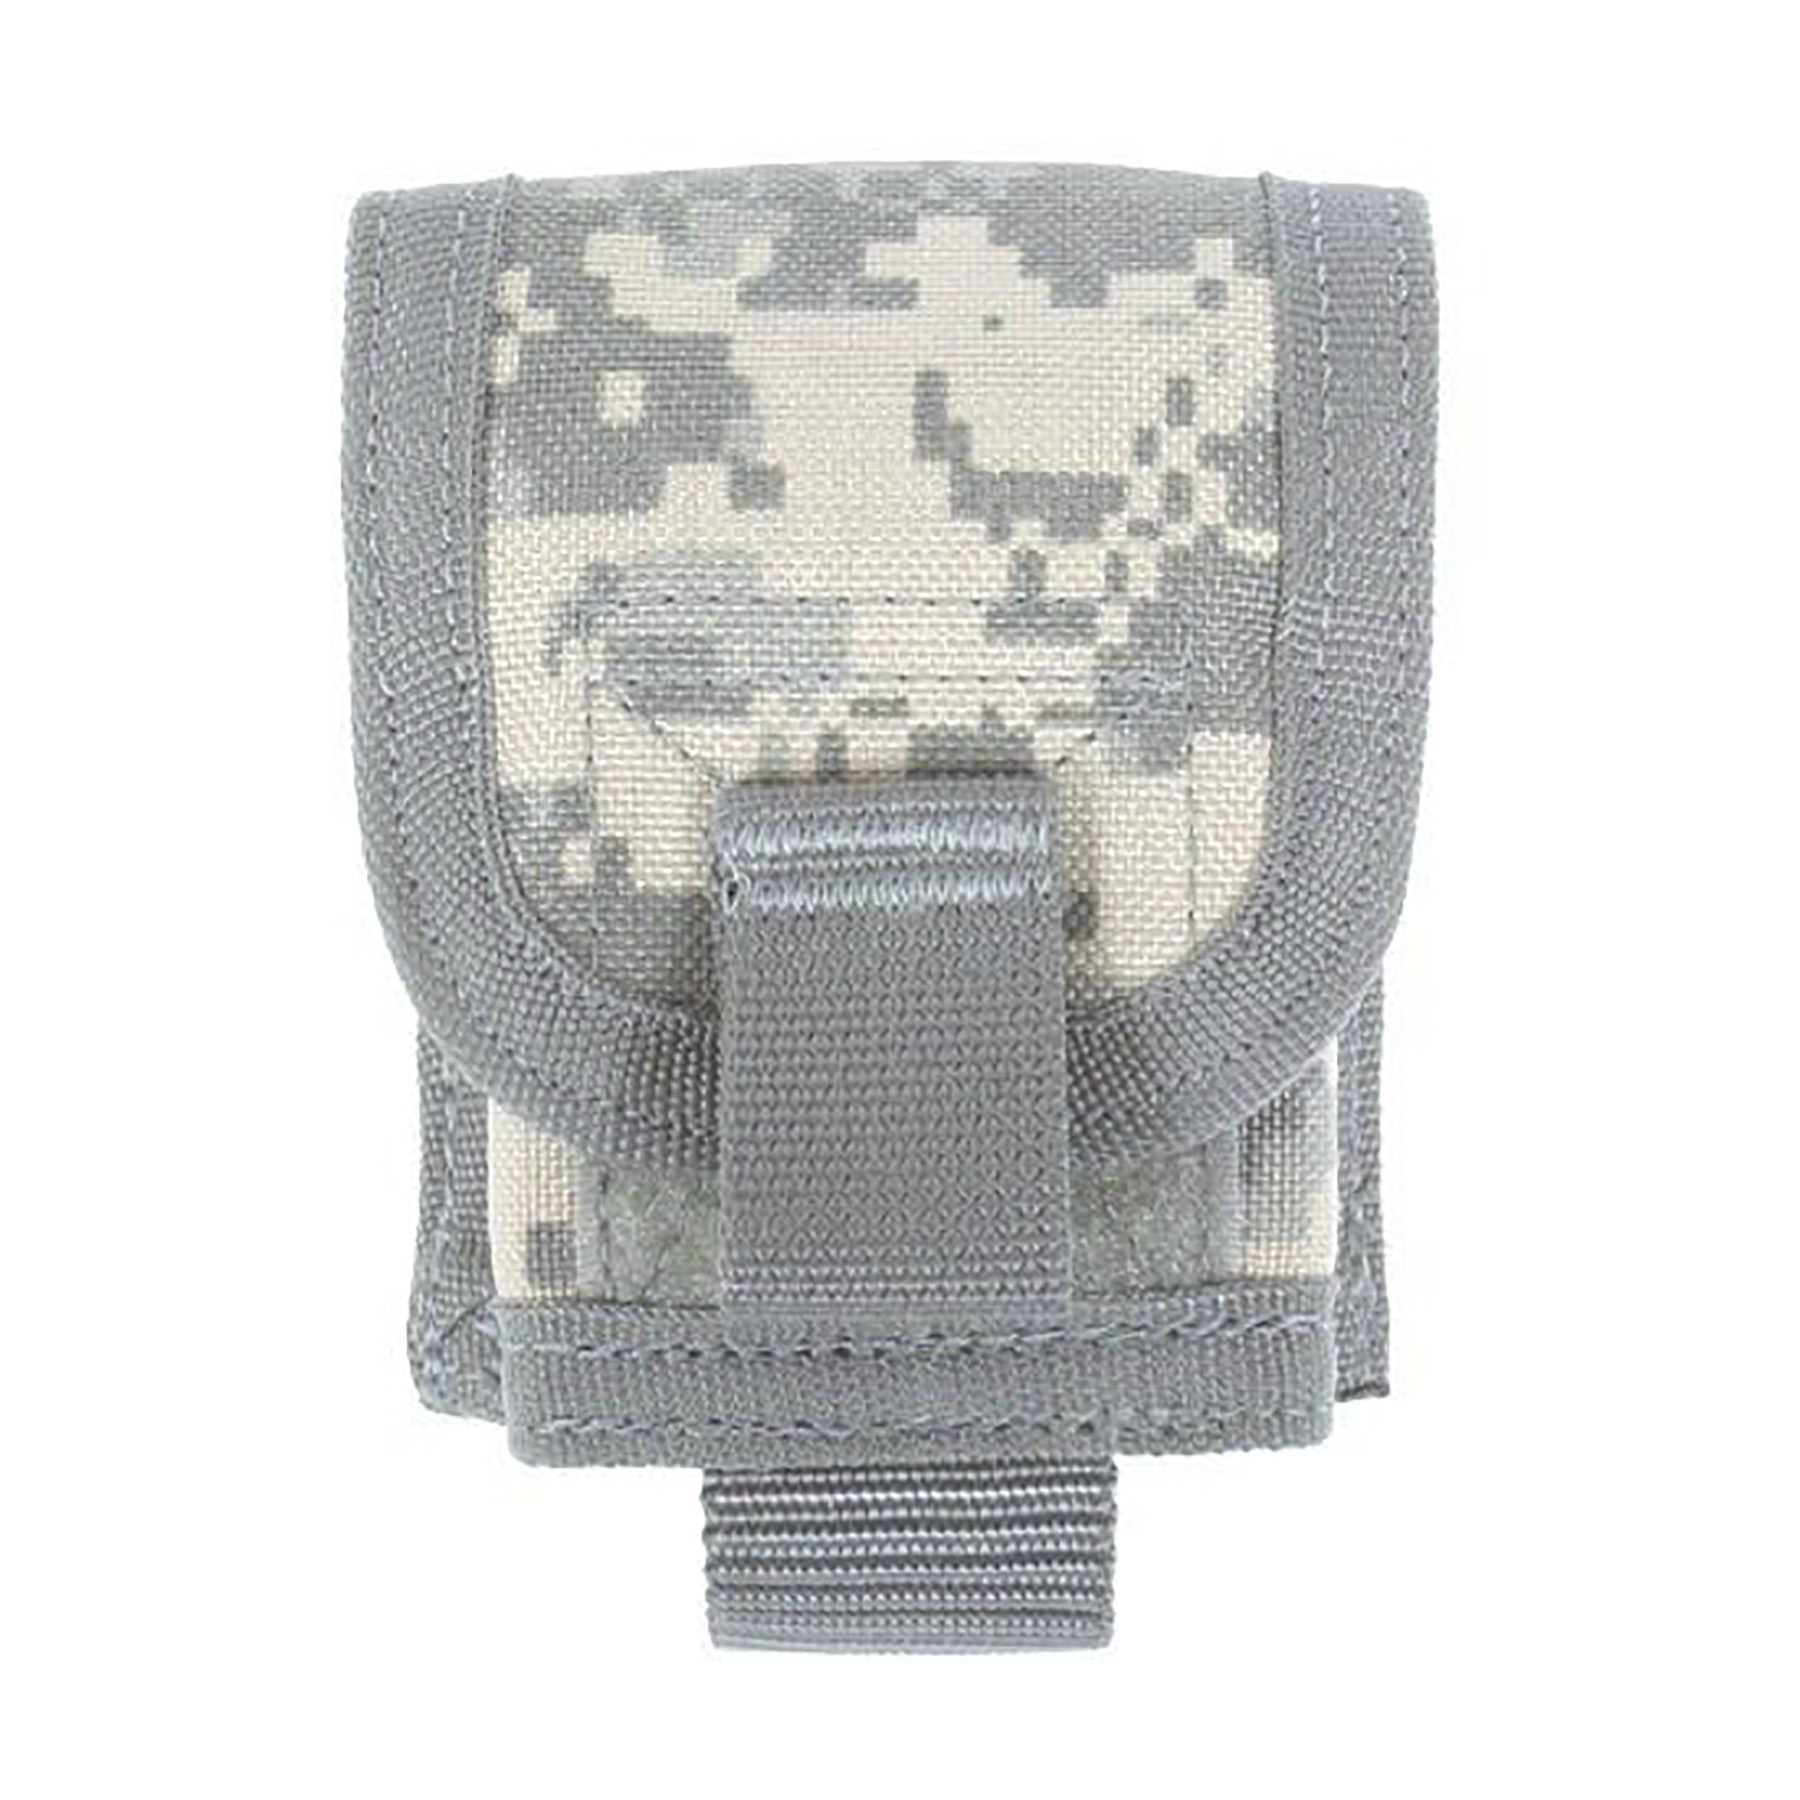 Spec Ops T.H.E. Smartphone Holster